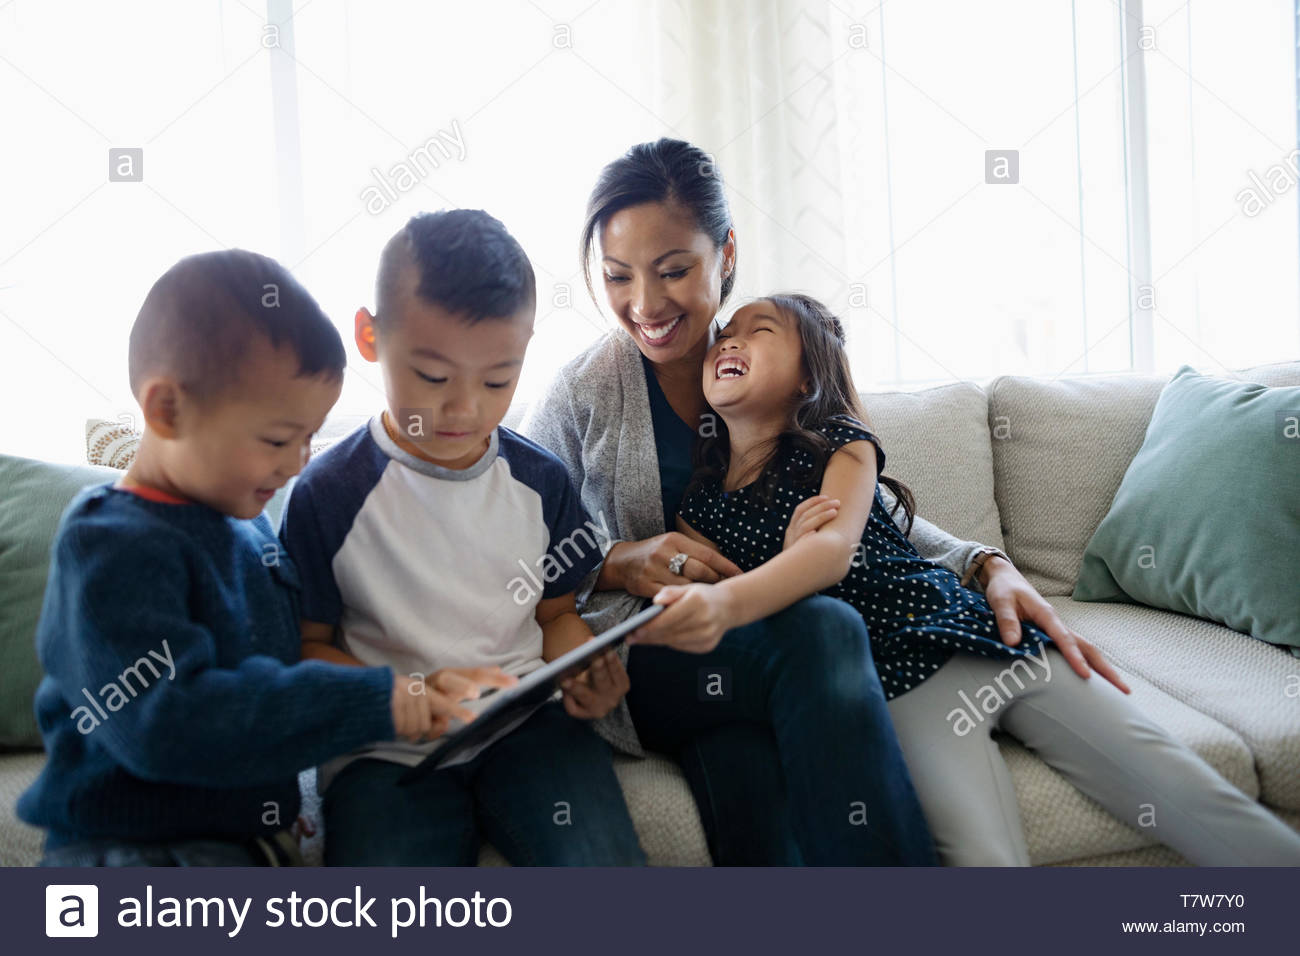 Happy mother and children using digital tablet on living room sofa - Stock Image